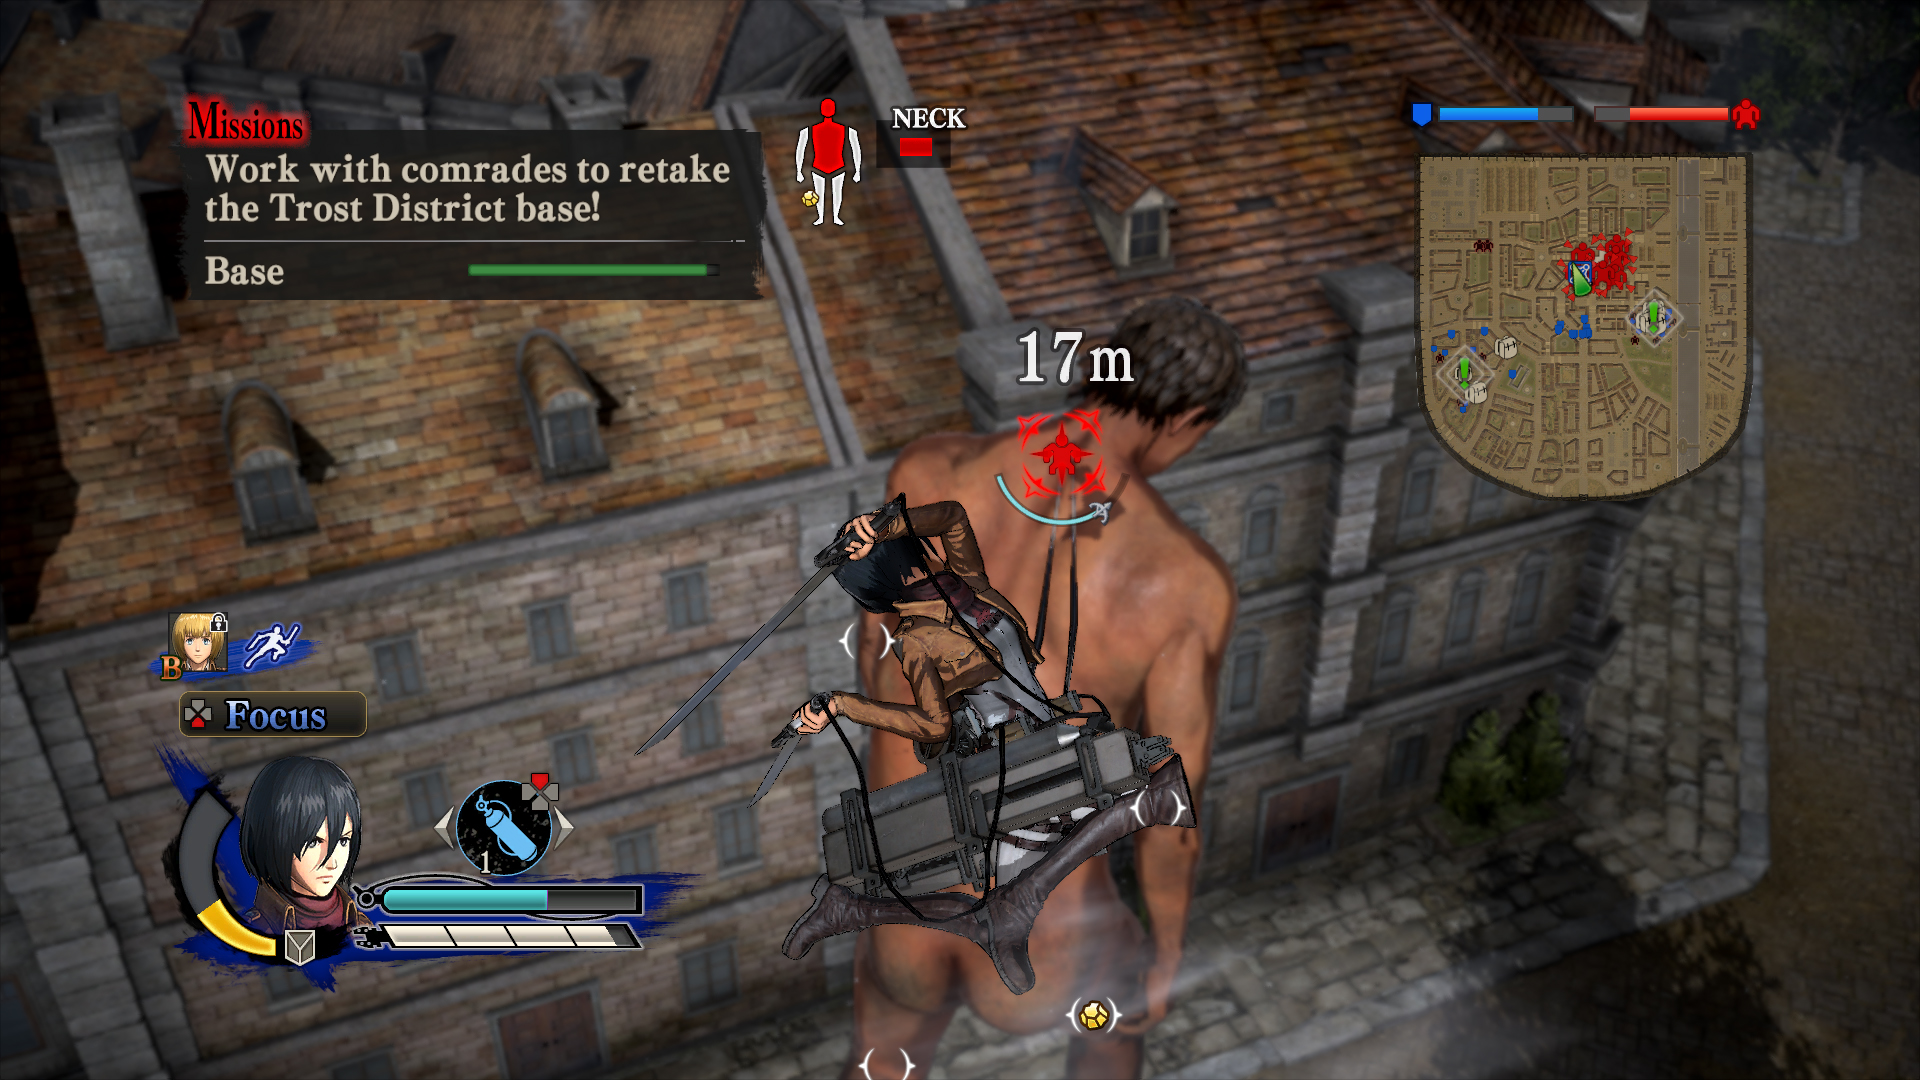 attack-on-titan-game-screenshot- (5)